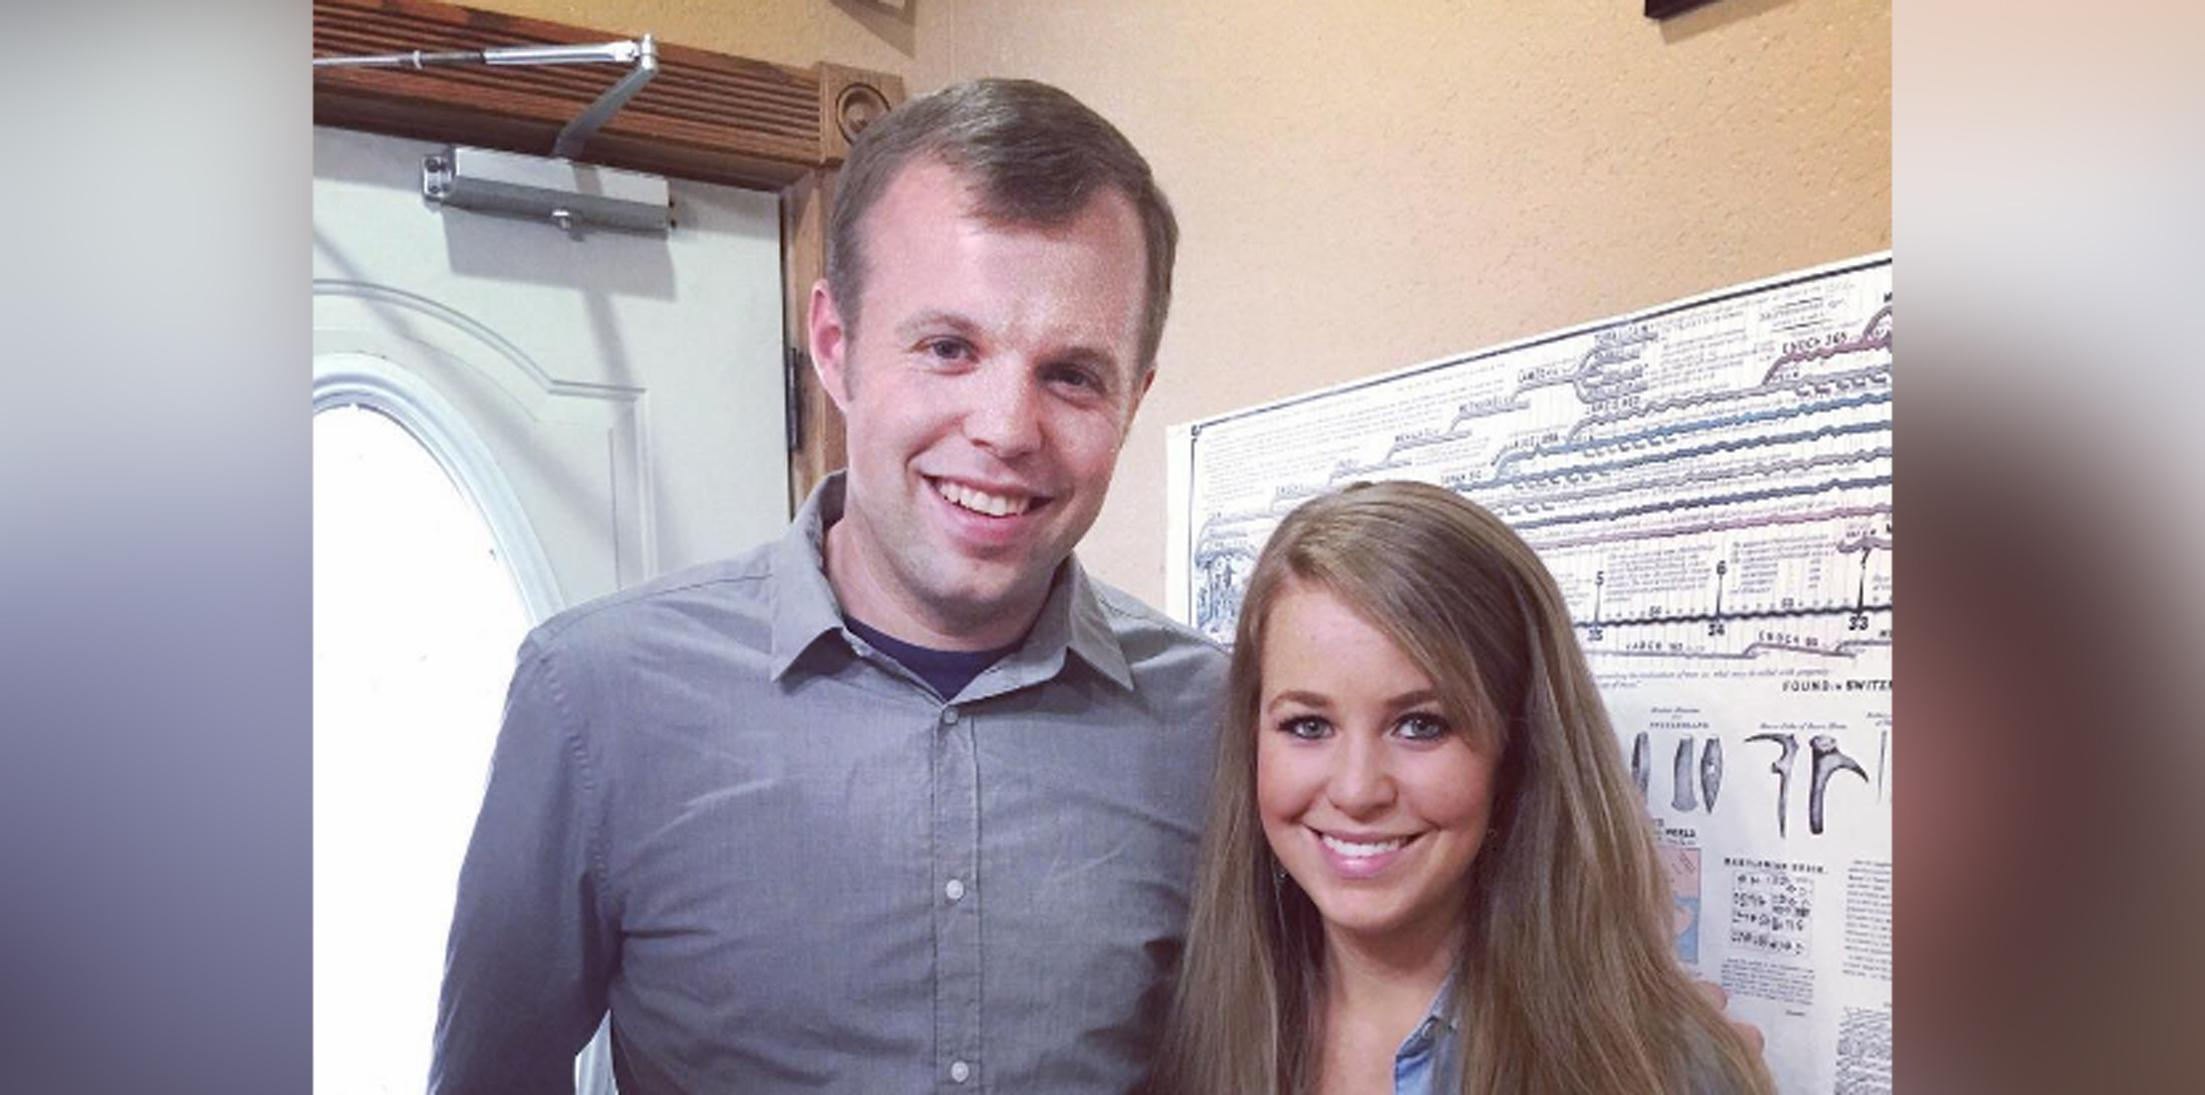 John david duggar courting mystery woman find out secret relationship hero